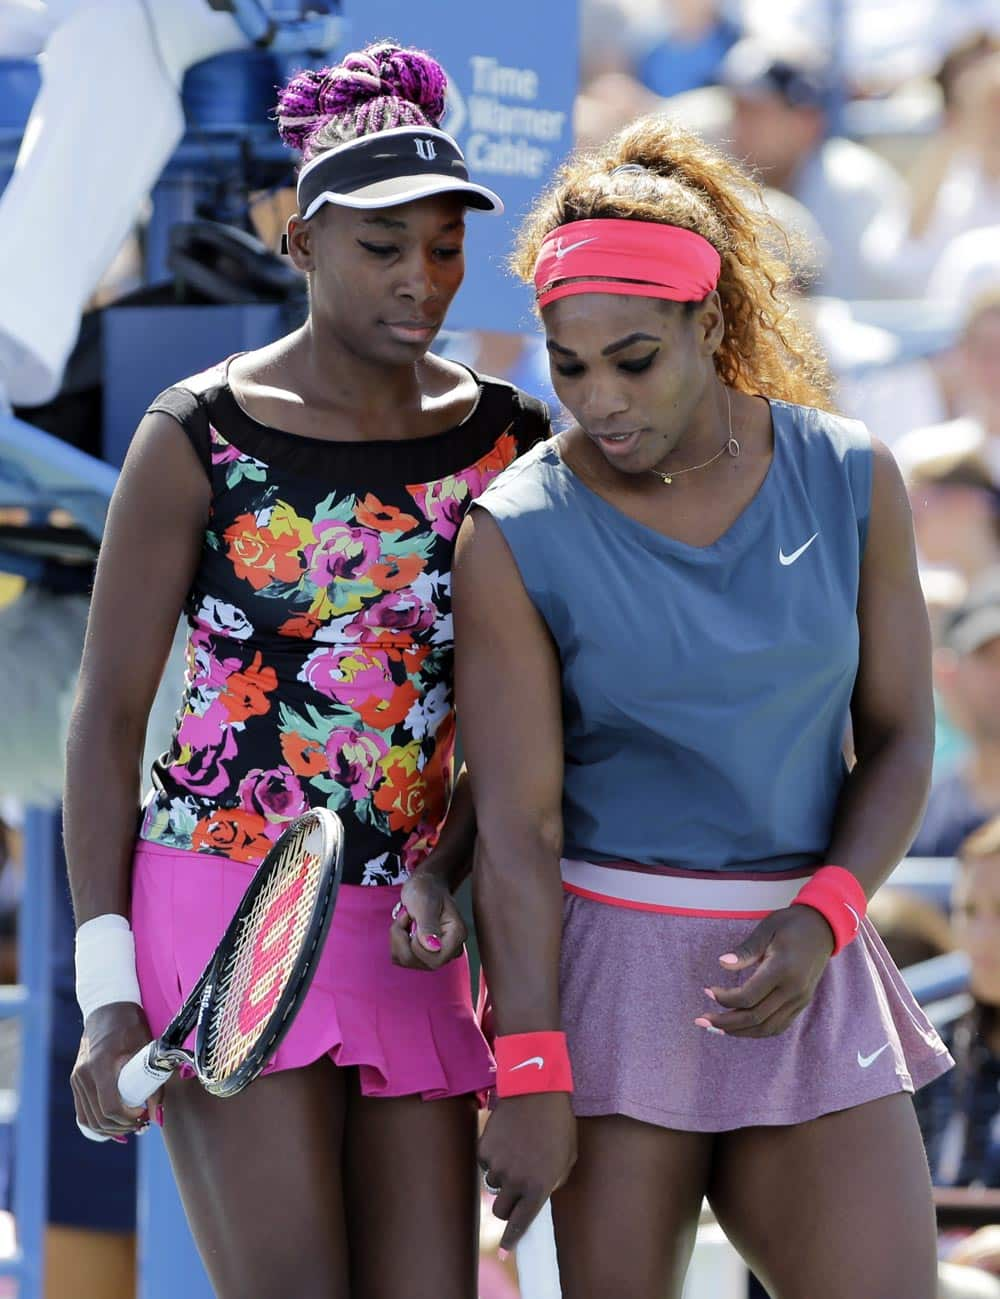 Venus Williams, left, and Serena Williams plan the next point against Sara Errani, of Italy, and Roberta Vinci, of Italy, during the women`s doubles quarterfinals of the 2013 US Open tennis tournament.